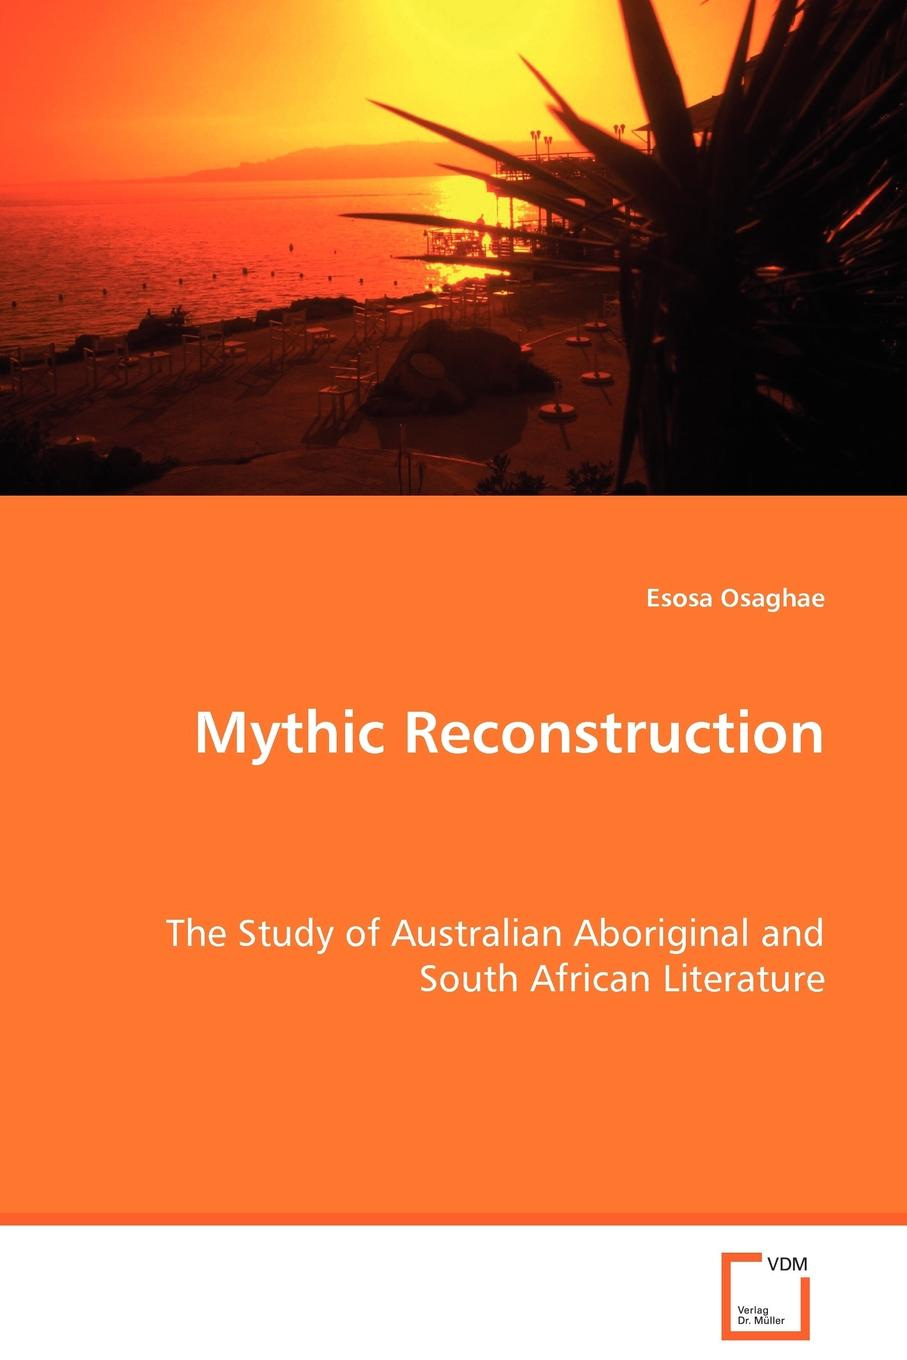 Osaghae Esosa Mythic Reconstruction - The Study of Australian Aboriginal and South African Literature r sugirtharajah s exploring postcolonial biblical criticism history method practice